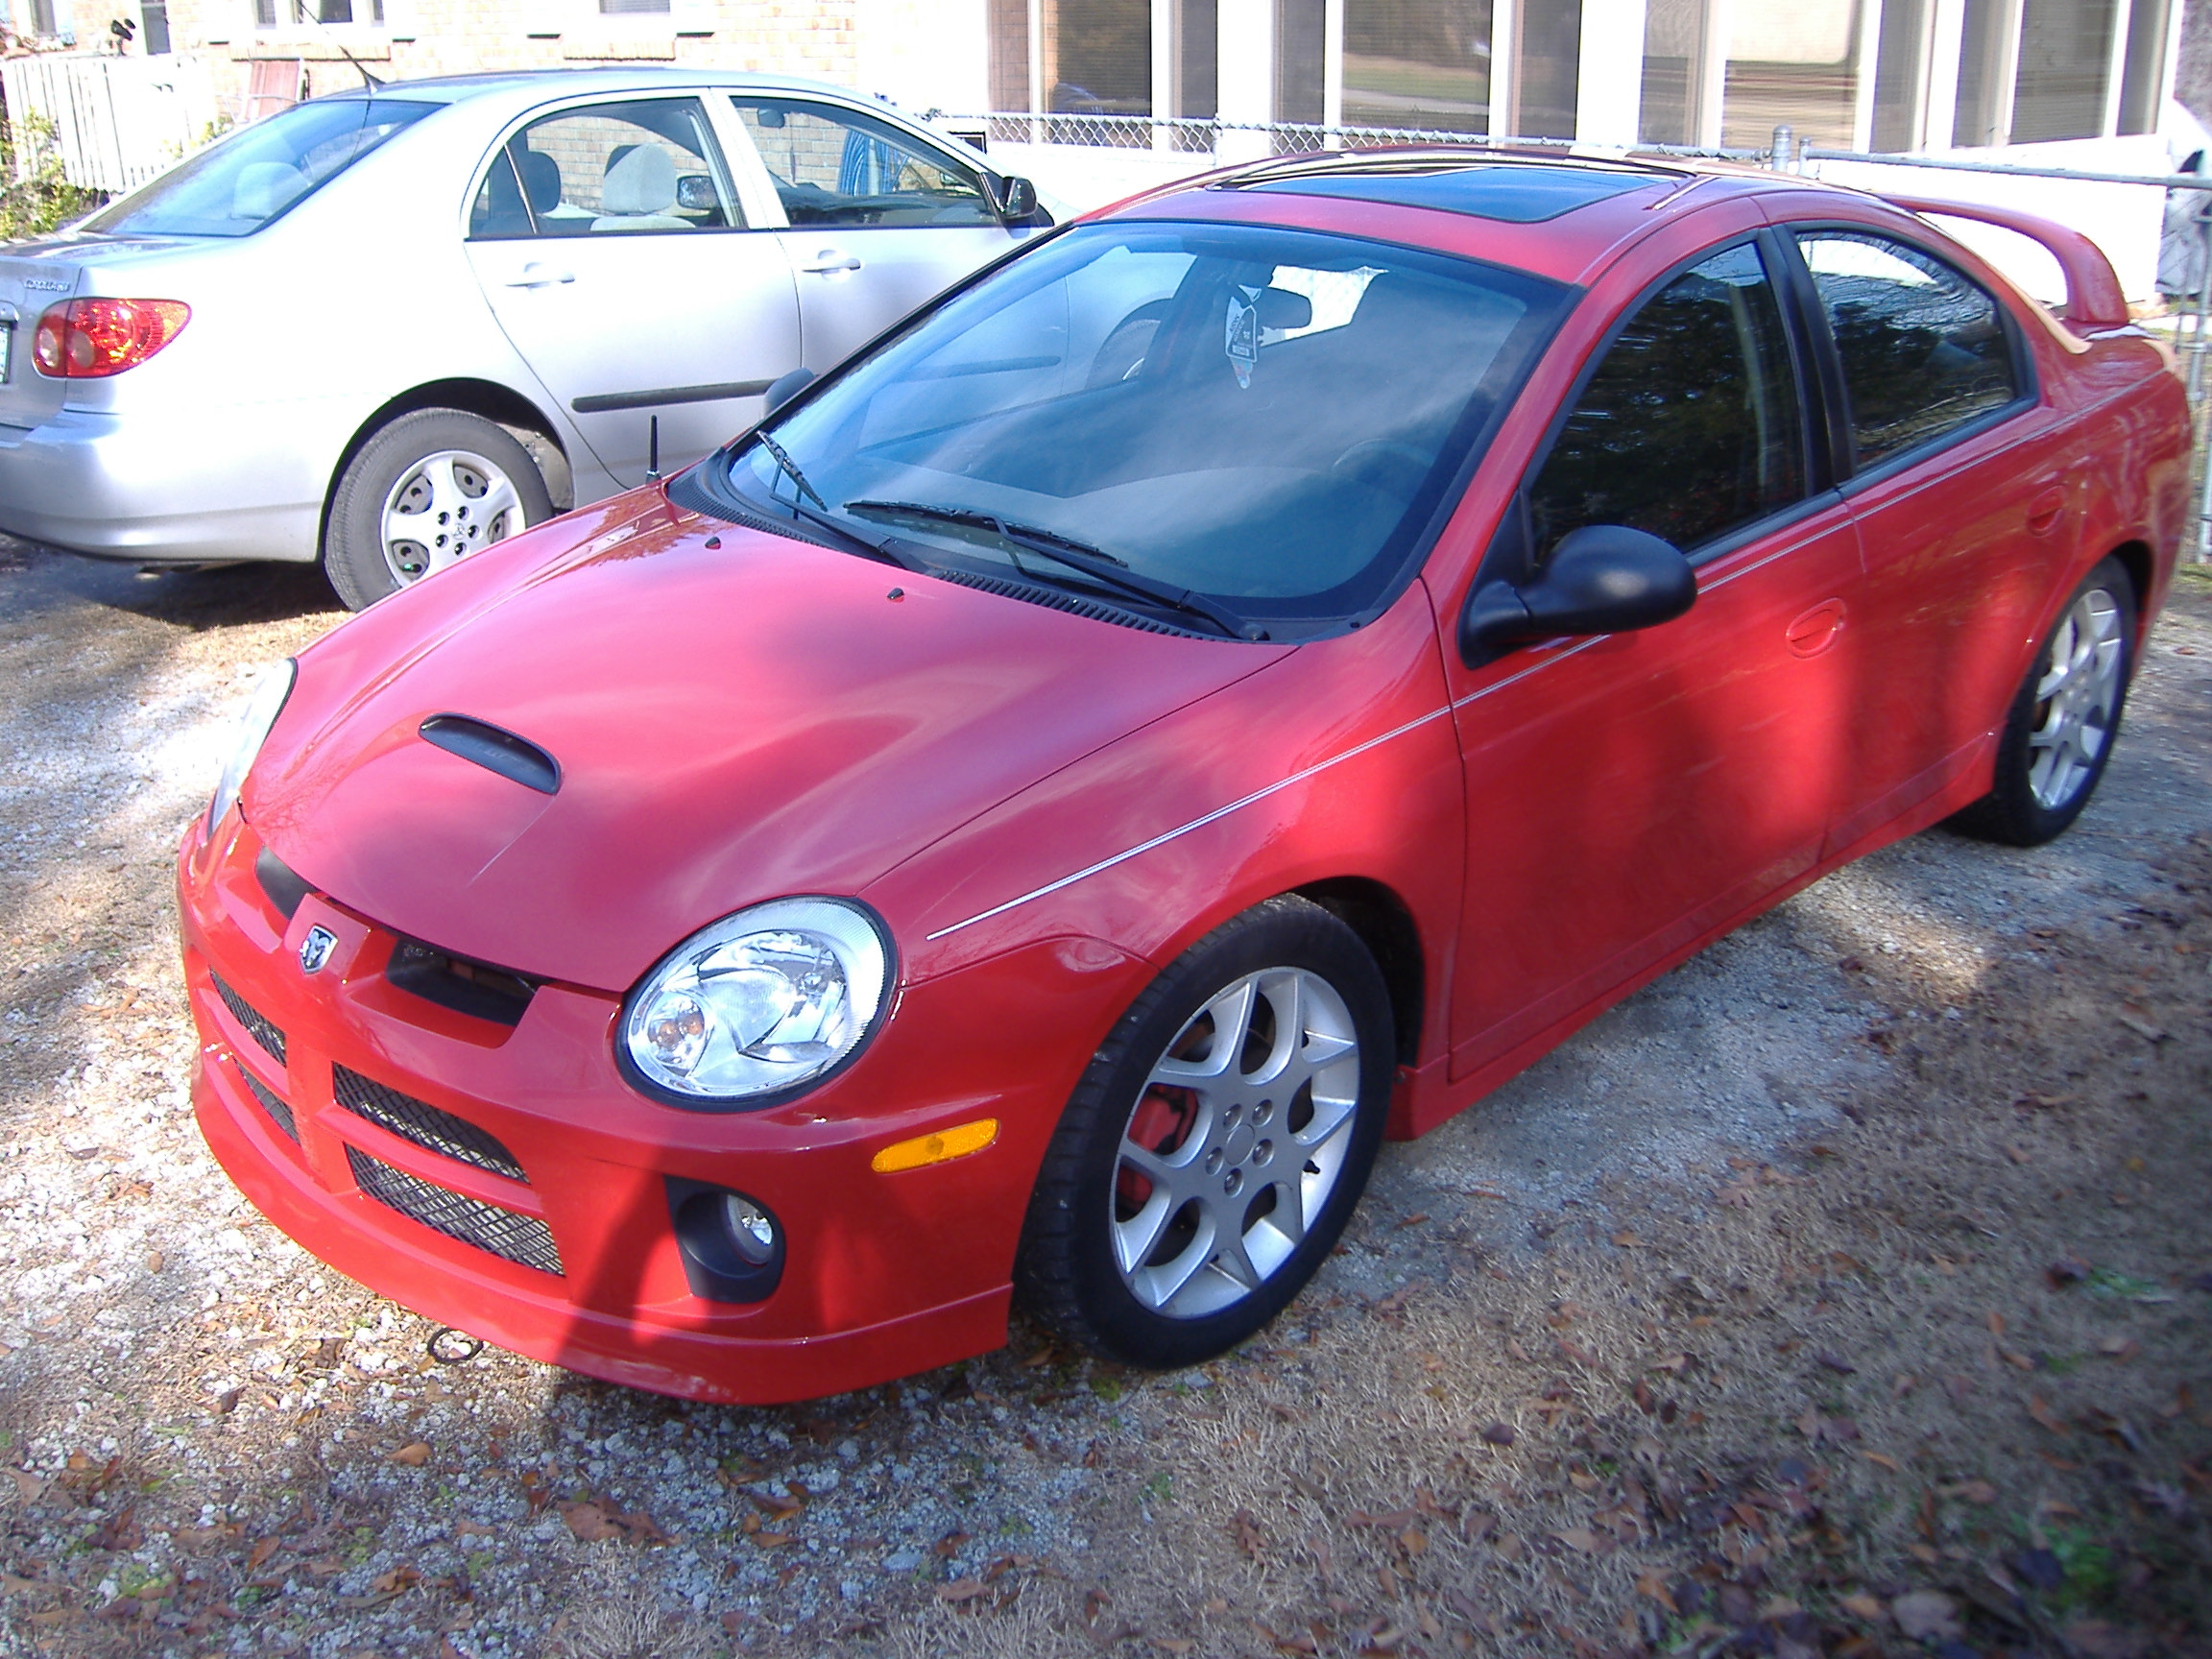 2004 Dodge Neon SRT-4 srt-4 Pictures, Mods, Upgrades, Wallpaper ...